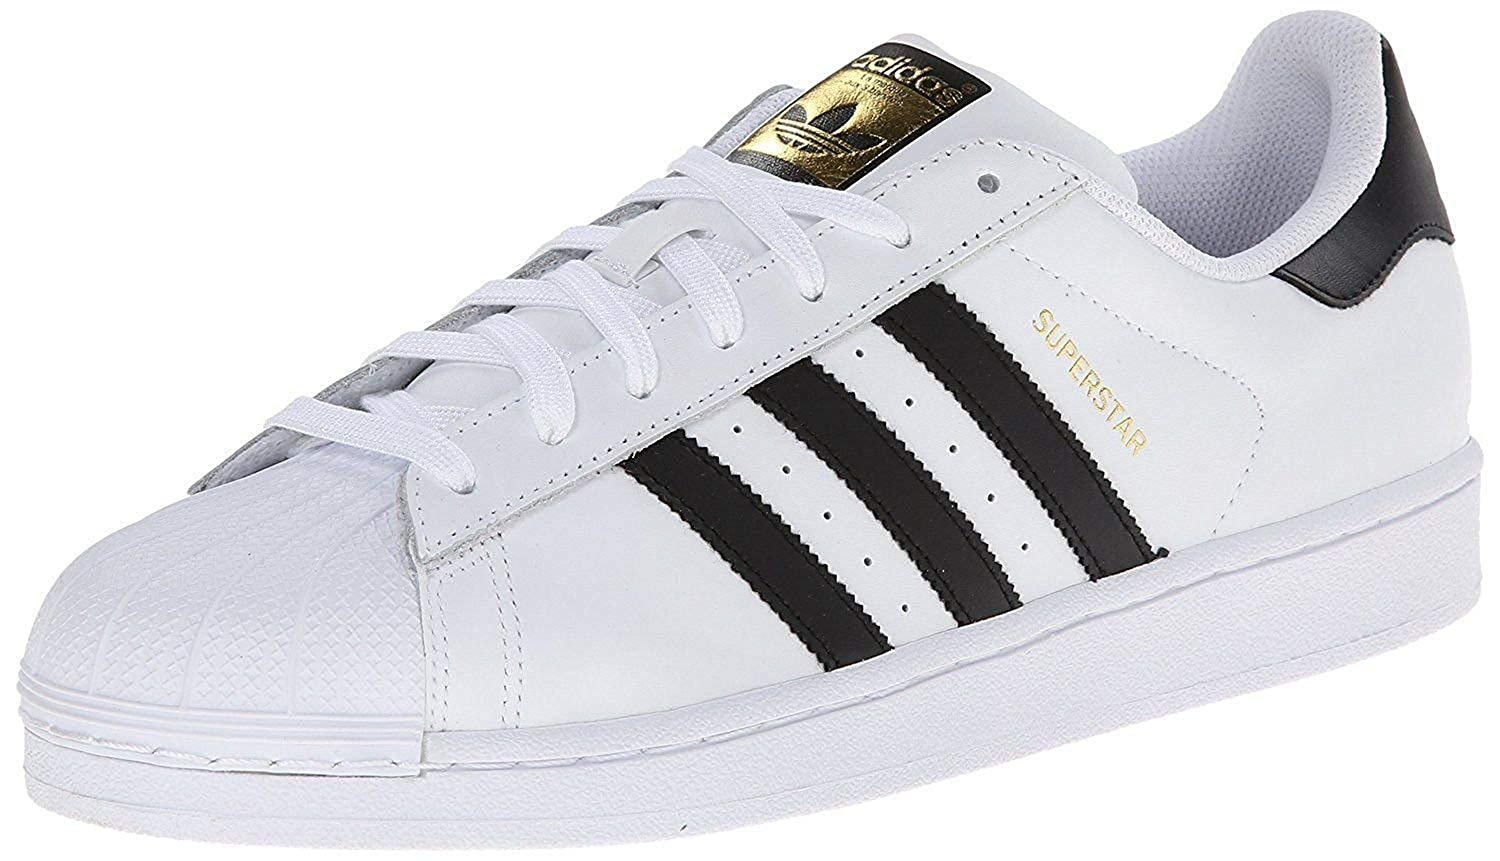 Adidas Superstar Men's Sneakers (11), White / Black, 11 D(M) US